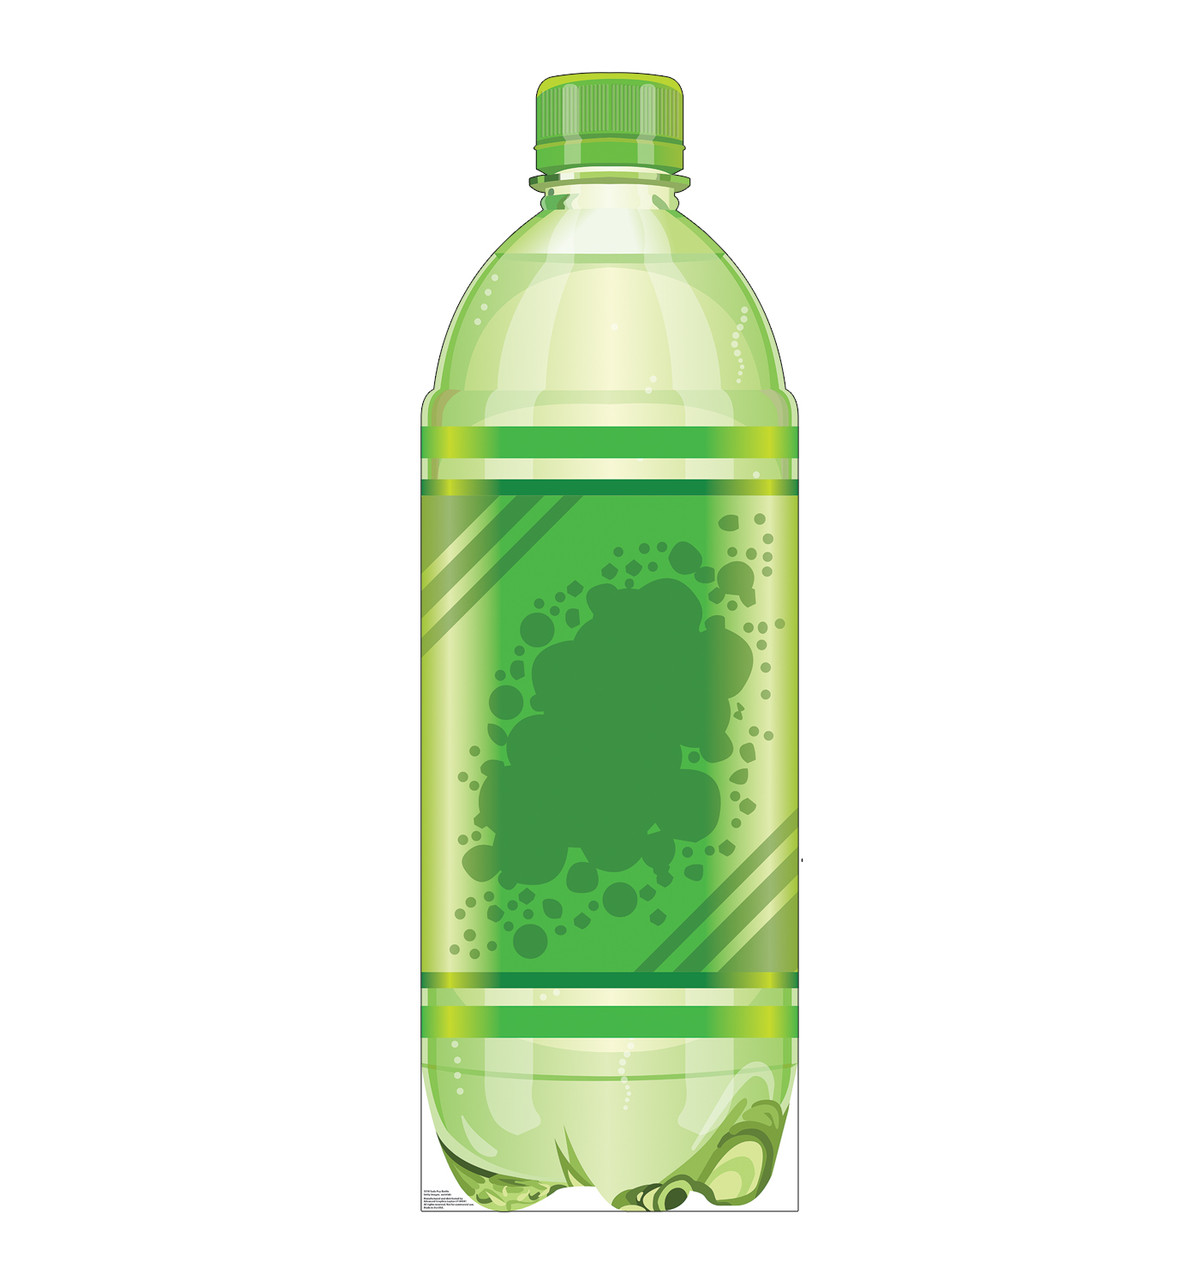 Life-size cardboard standee of a Soda Pop Bottle Front View